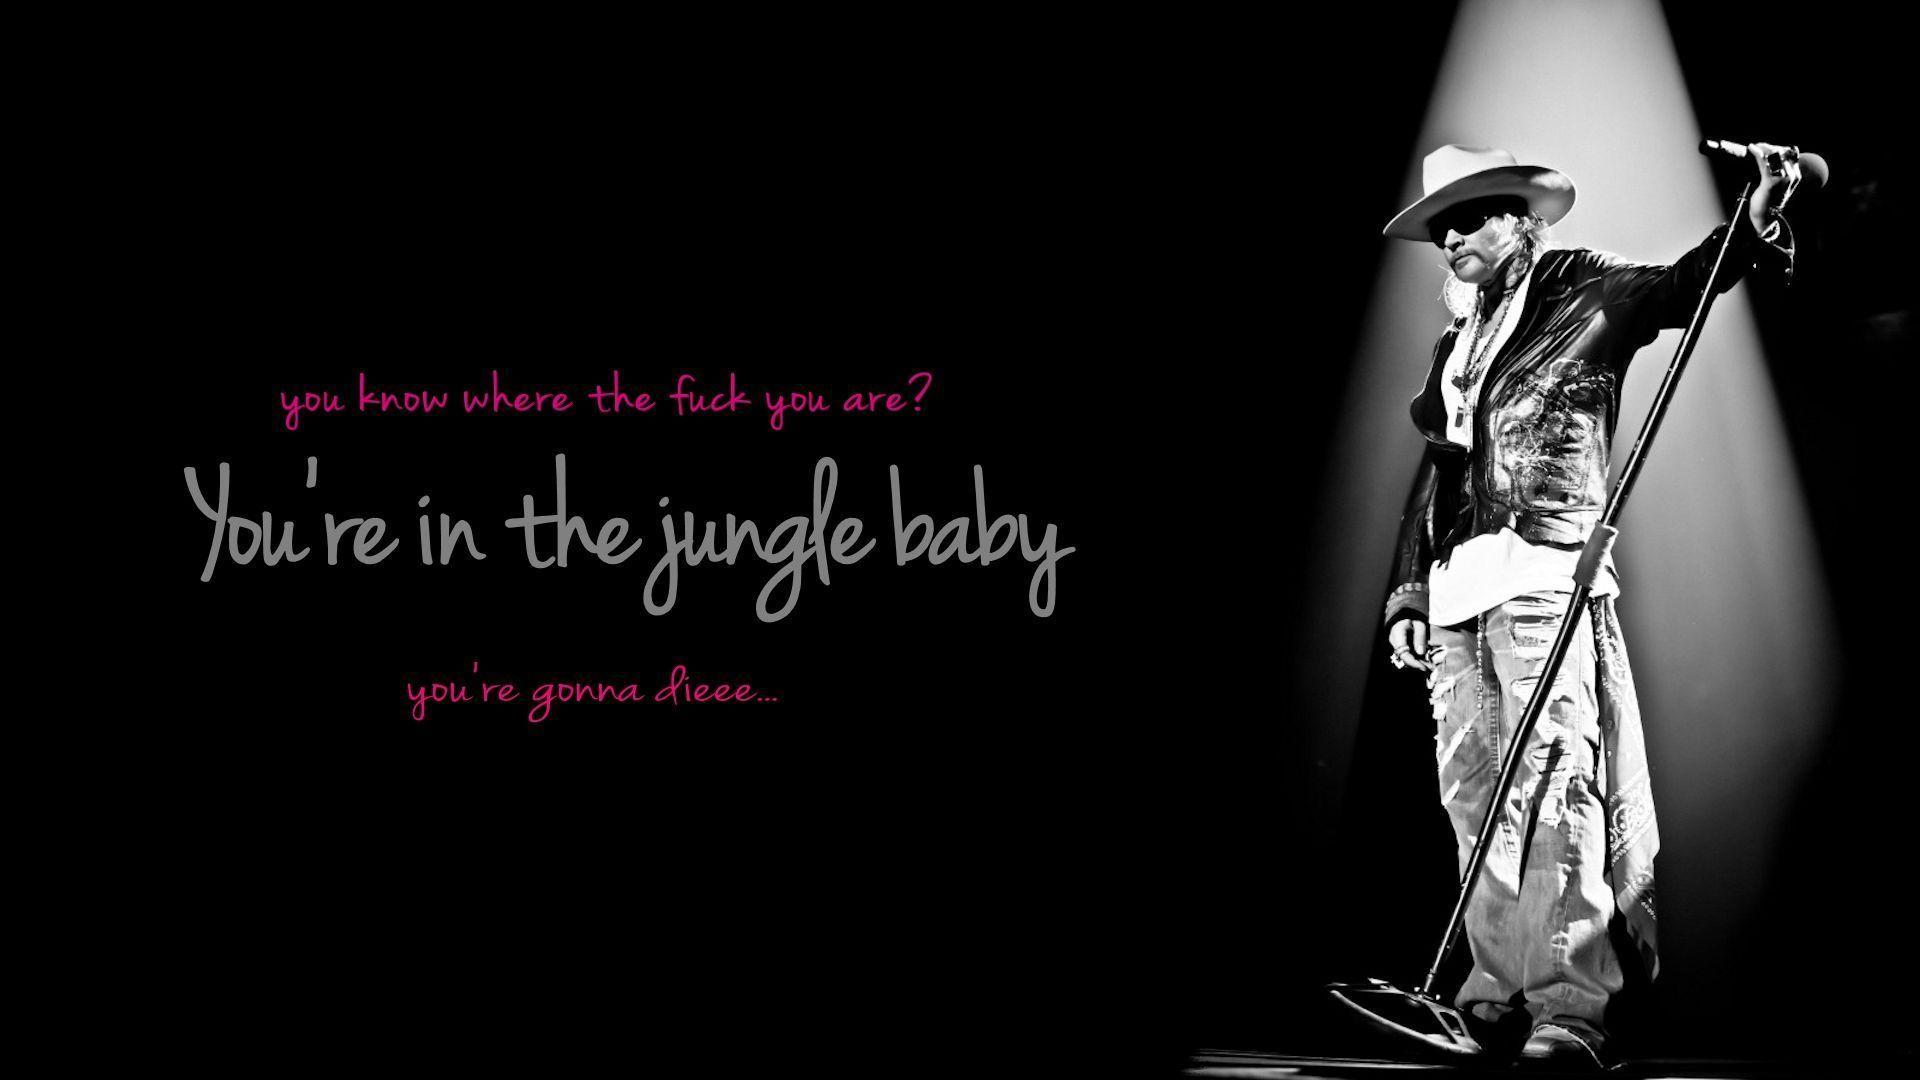 axl rose wallpaper - photo #36